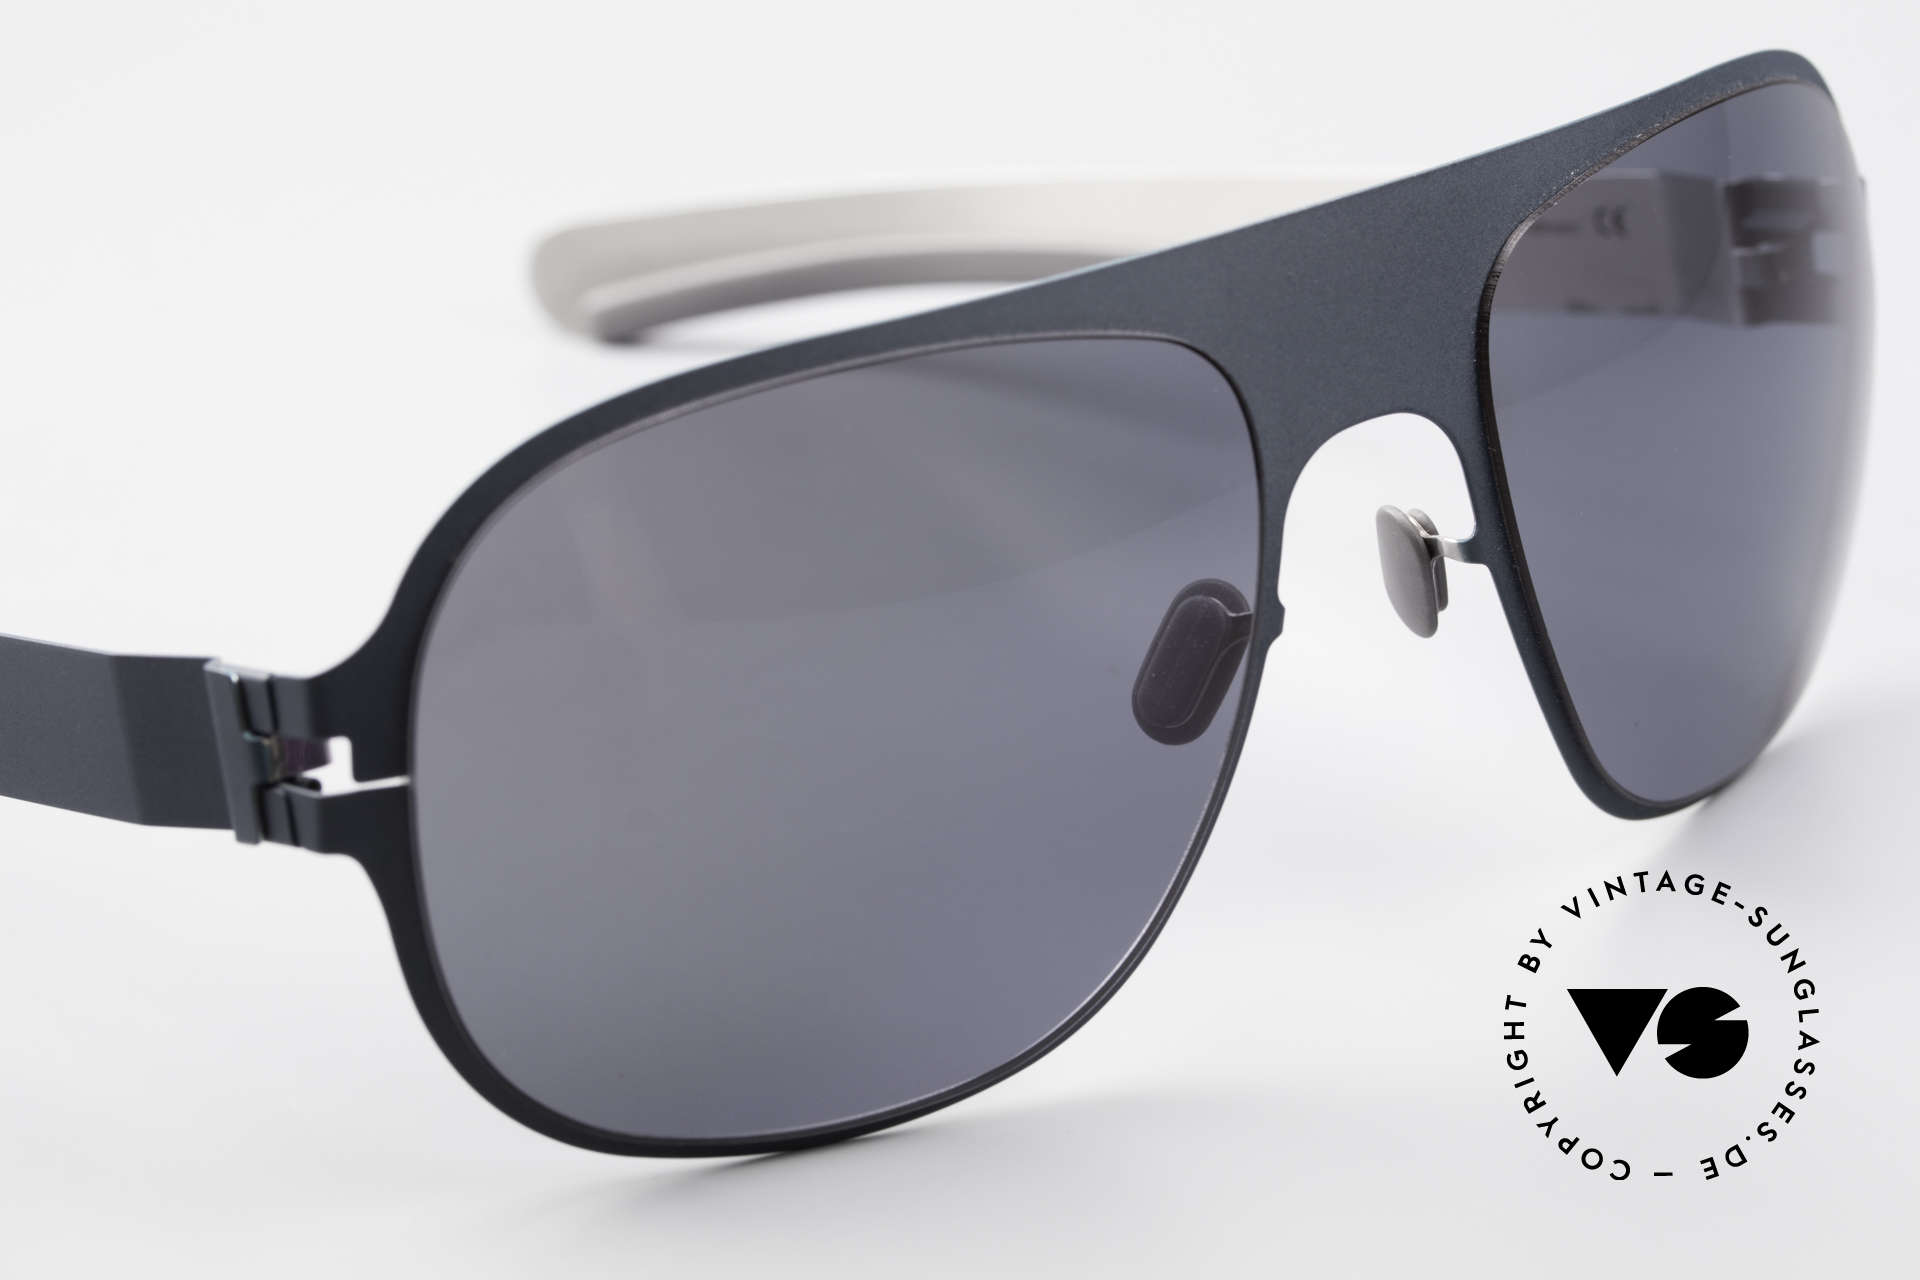 Mykita Rodney Limited Sunglasses From 2011, top-notch quality, made in Germany (Berlin-Kreuzberg), Made for Men